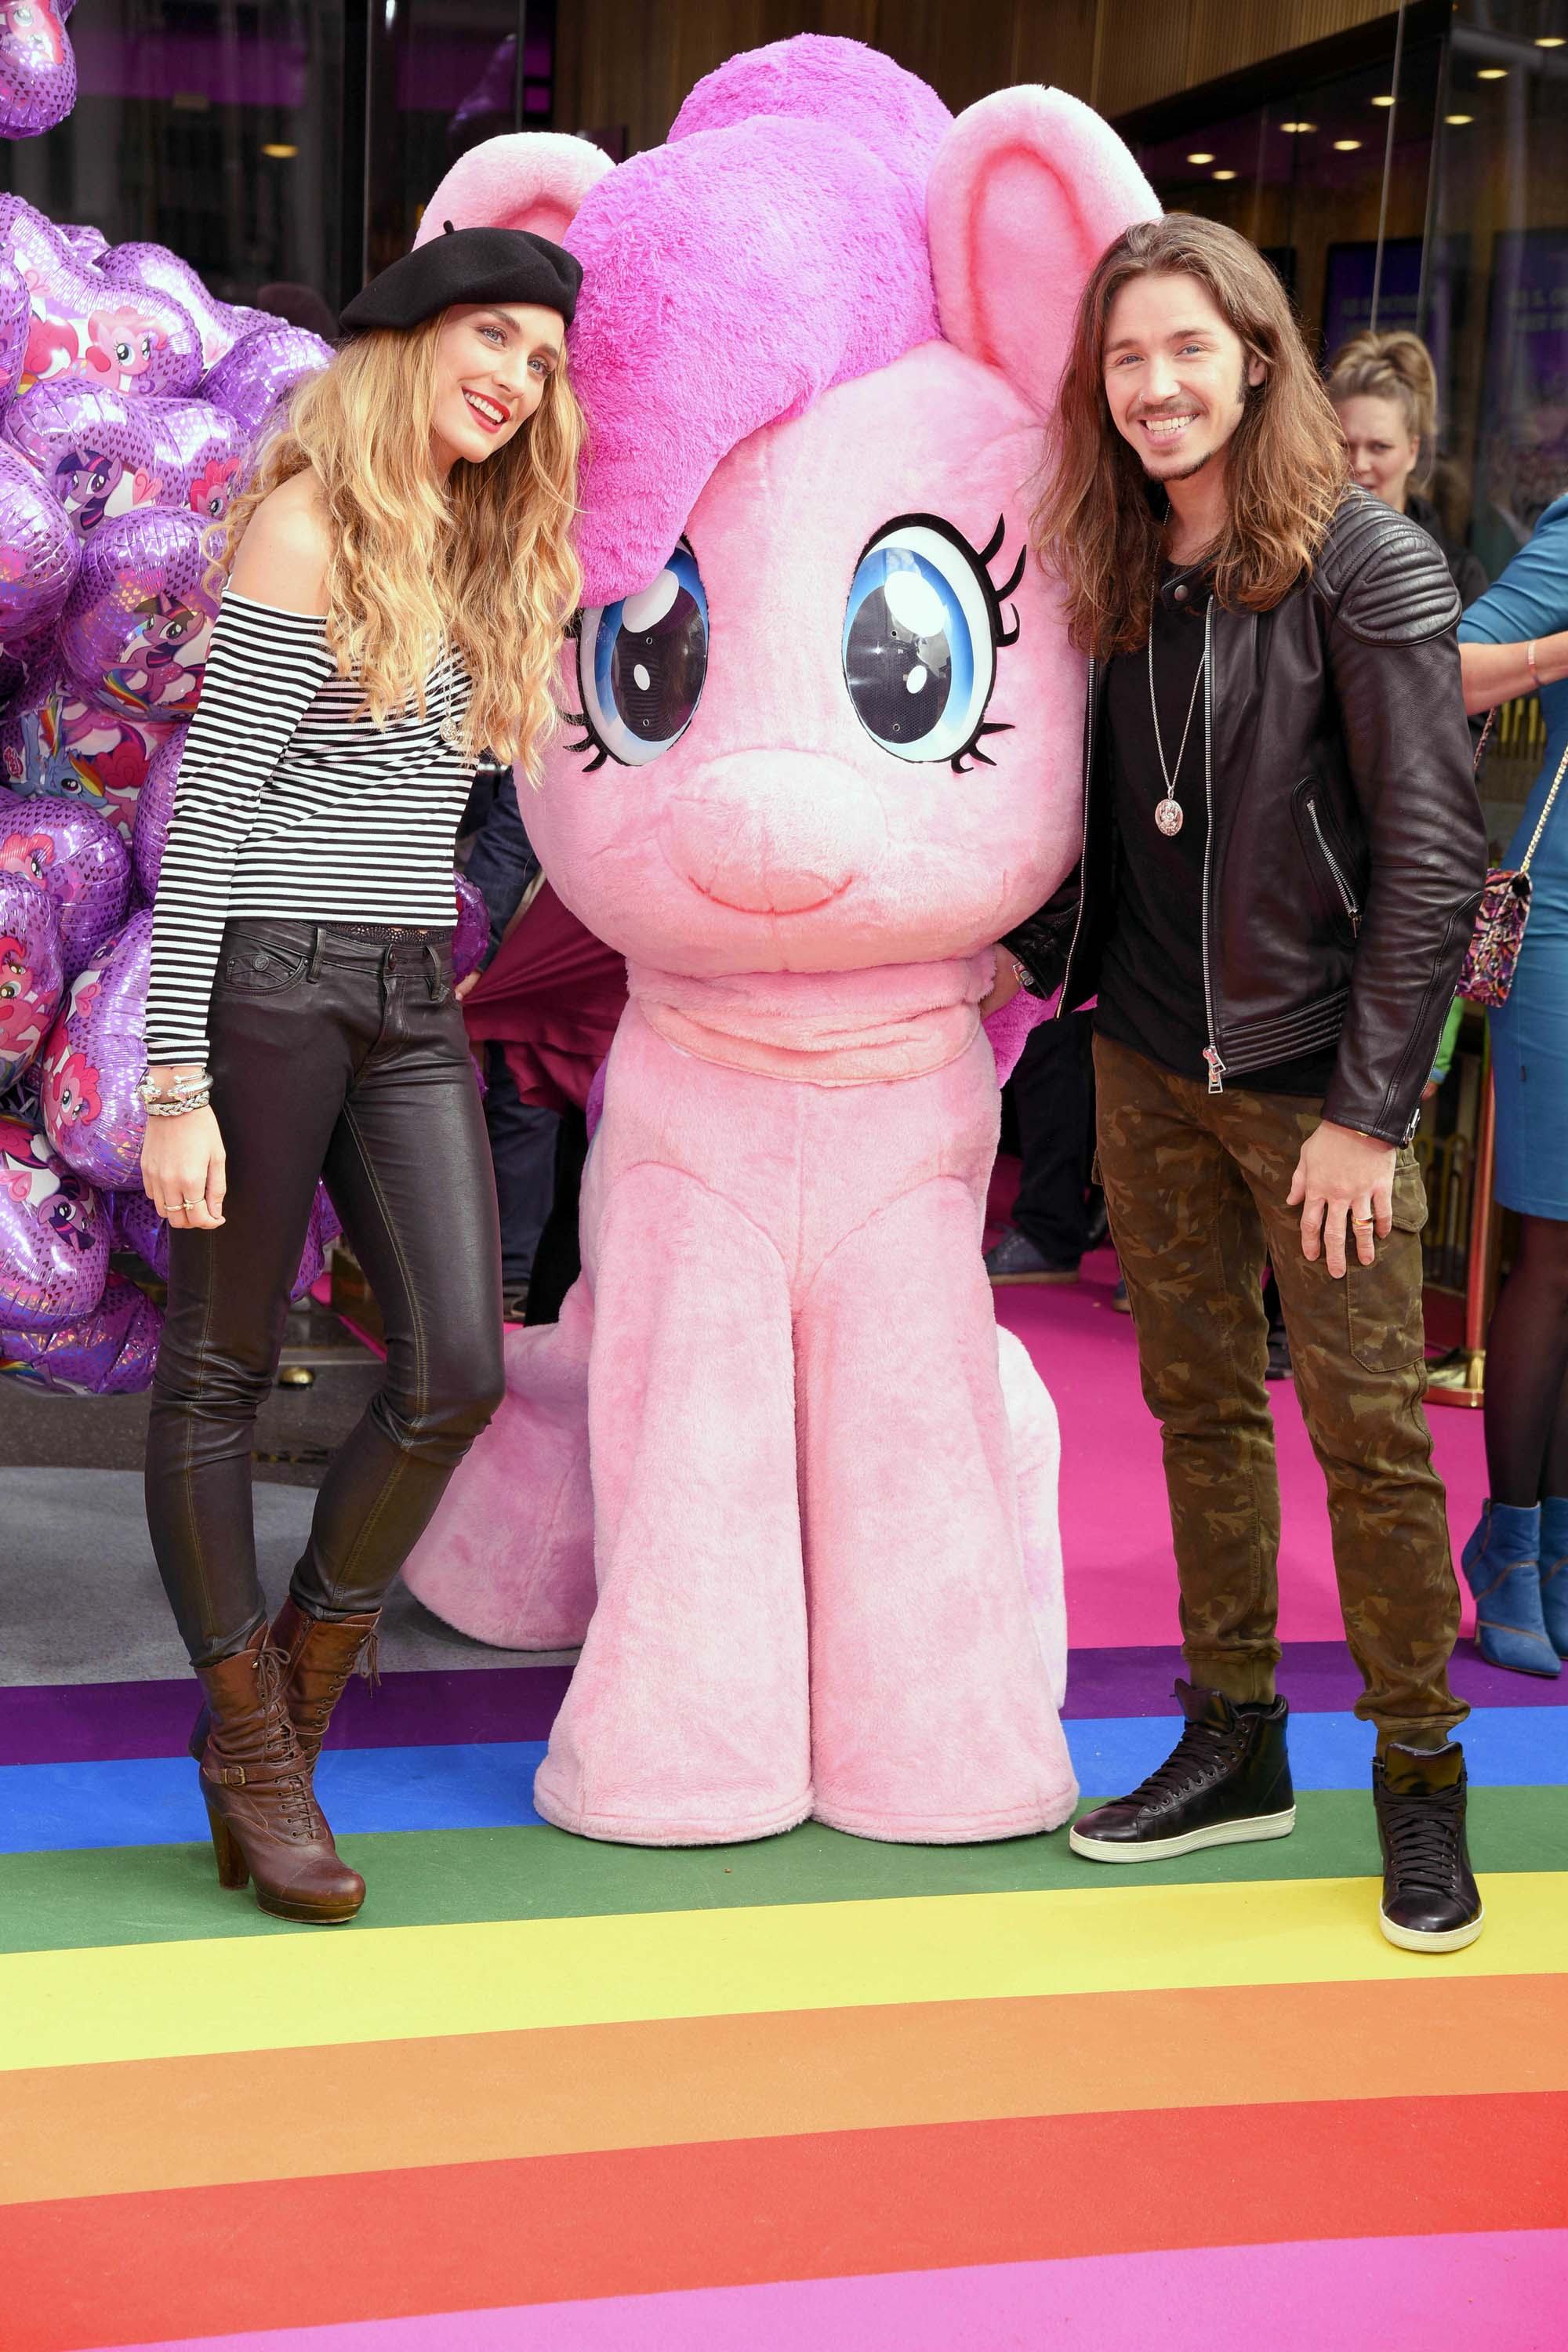 Verena Brock at the premiere of 'My Little Pony'